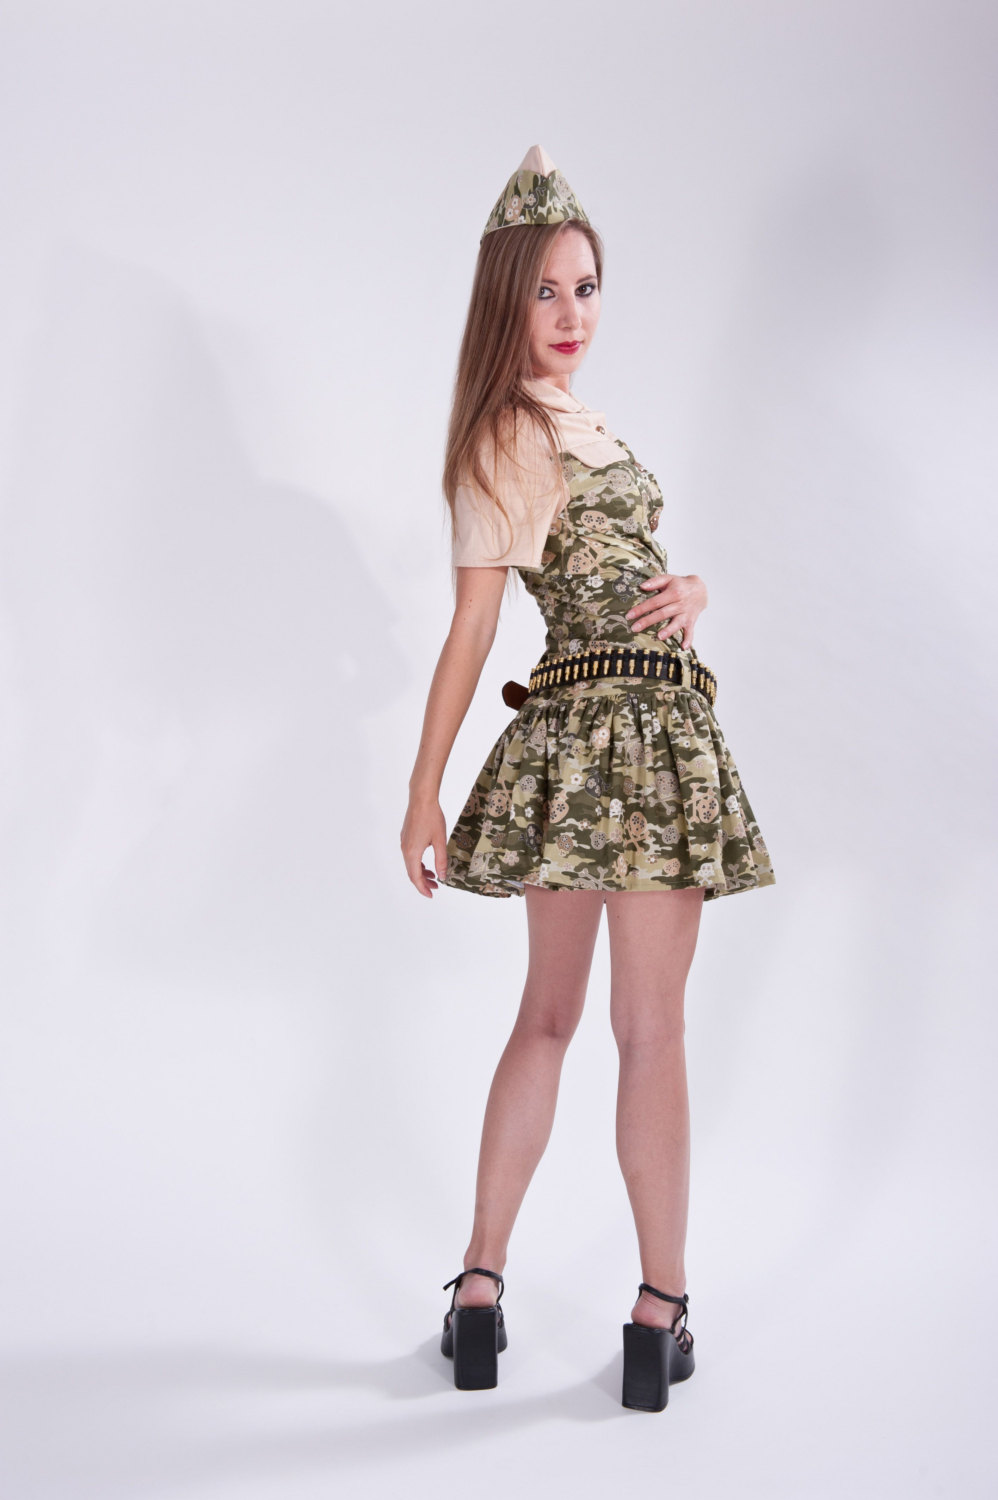 Zombie Hunter Camo Camouflage Skulls Military Mini Dress Ammo Belt and Garraison Cap Cute Sexy Halloween Costume Womens Small Medium